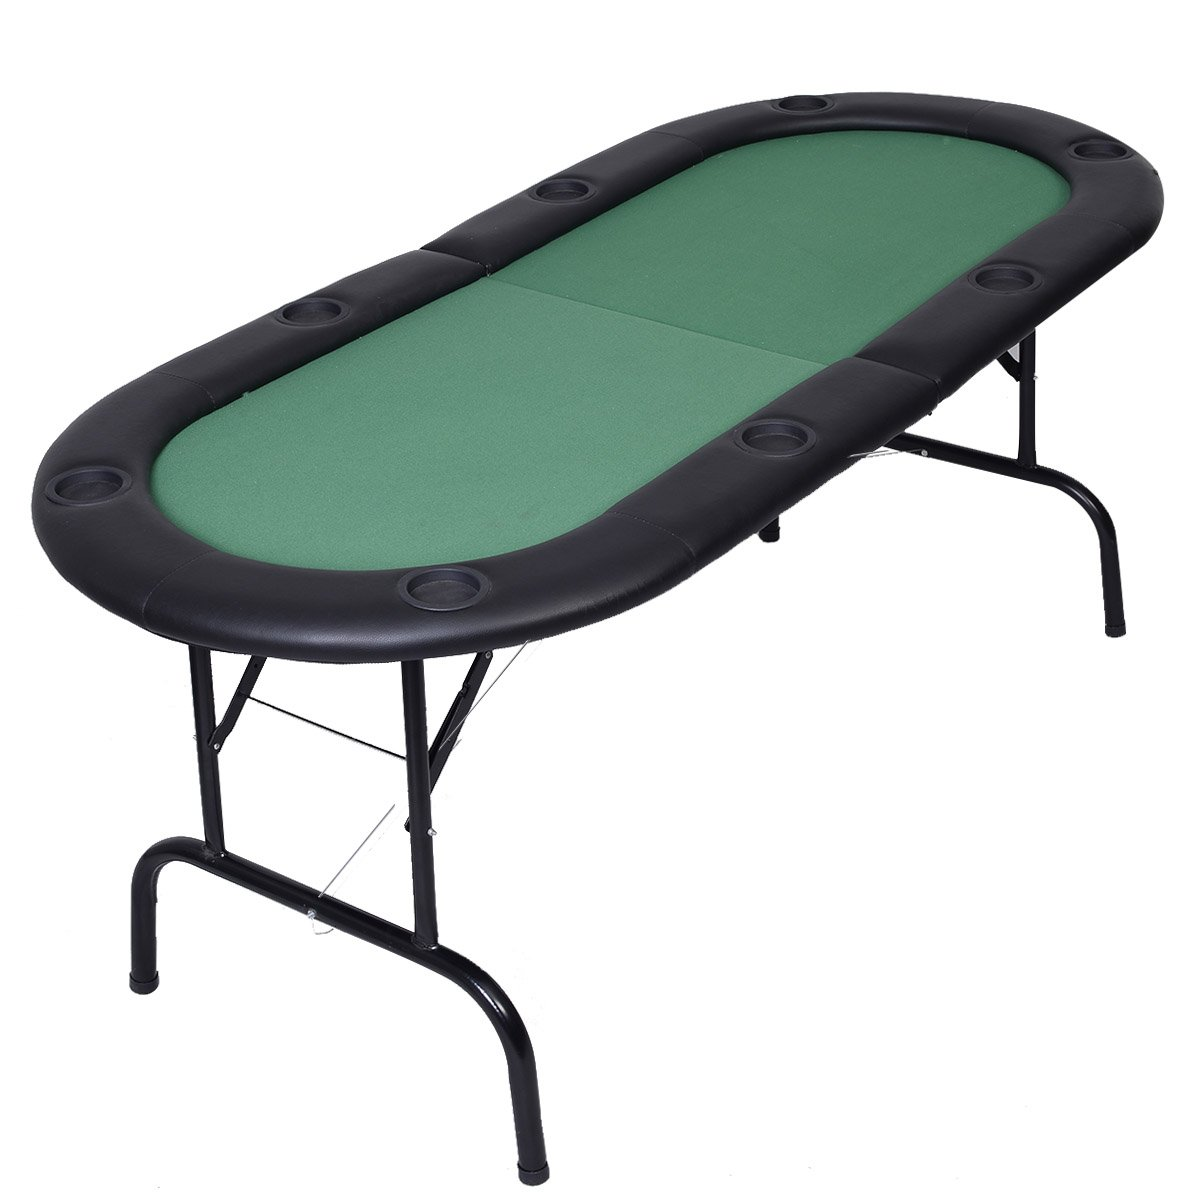 Perfect Amazon.com : Giantex Foldable 8 Player Poker Table Casino Texas Holdem Folding  Poker Play Table : Sports U0026 Outdoors